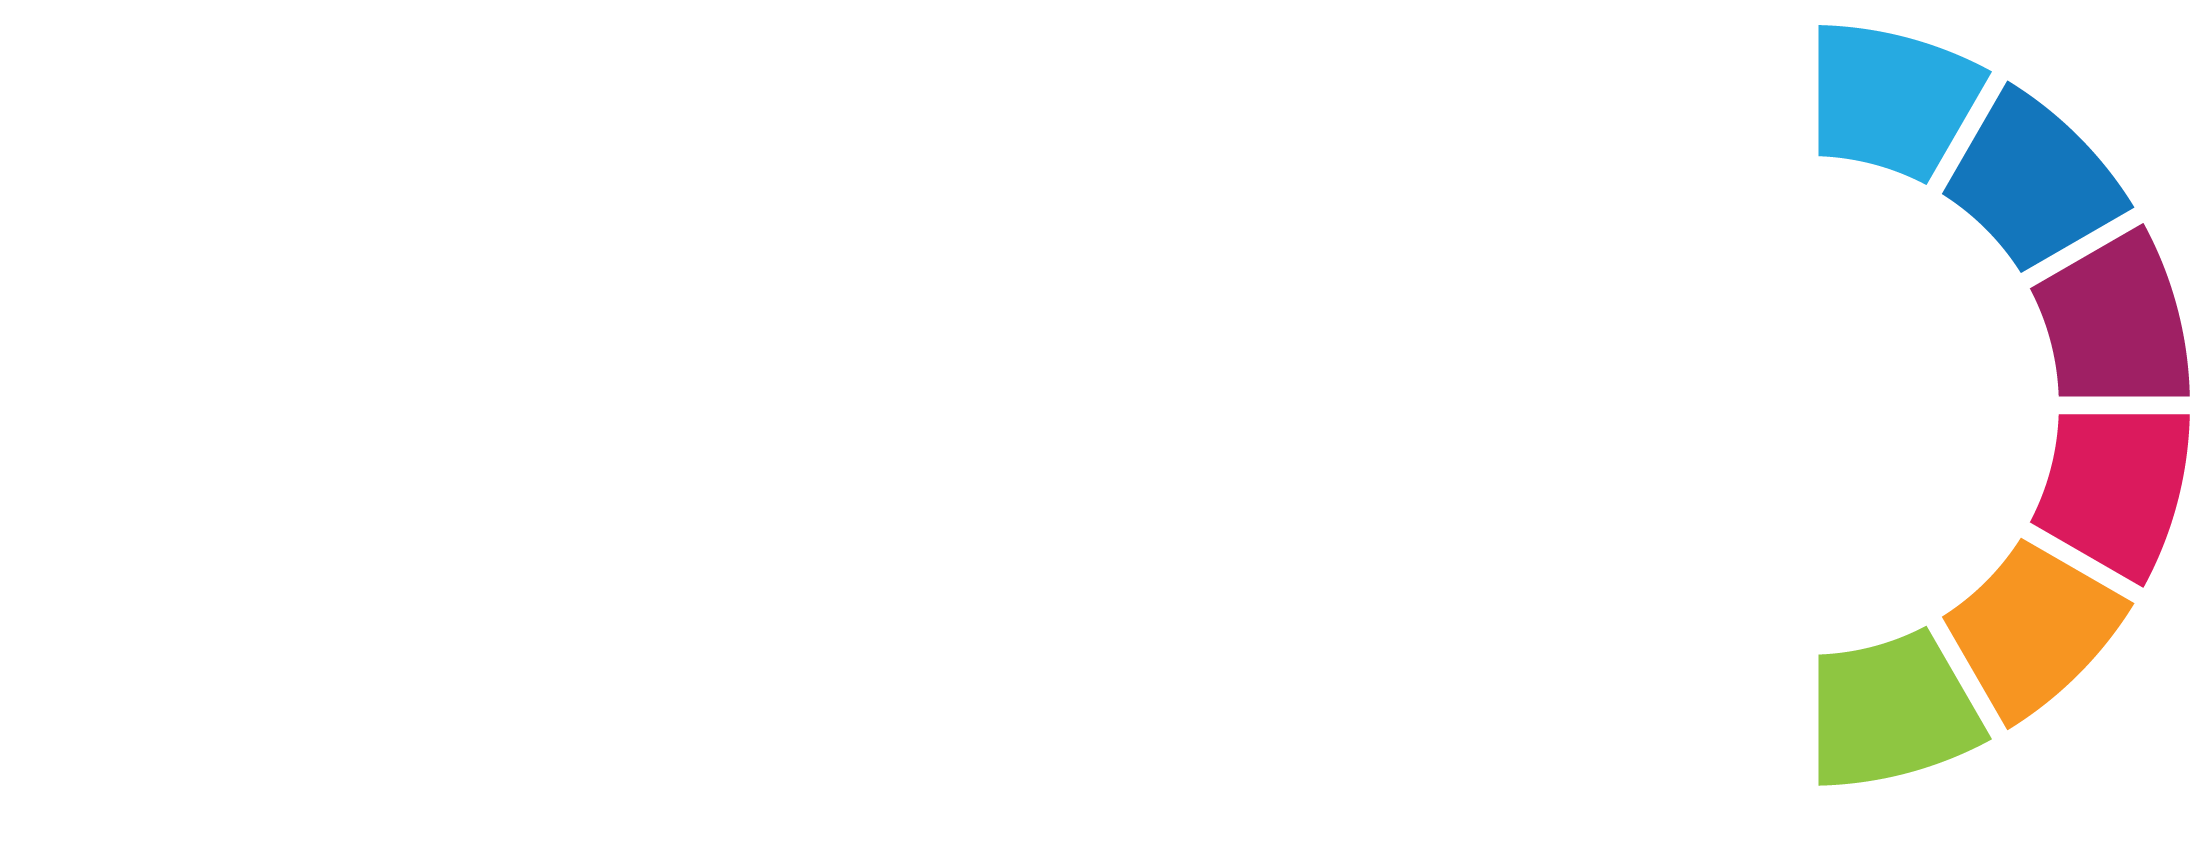 NET4AGE-FRIENDLY COST Action Logo